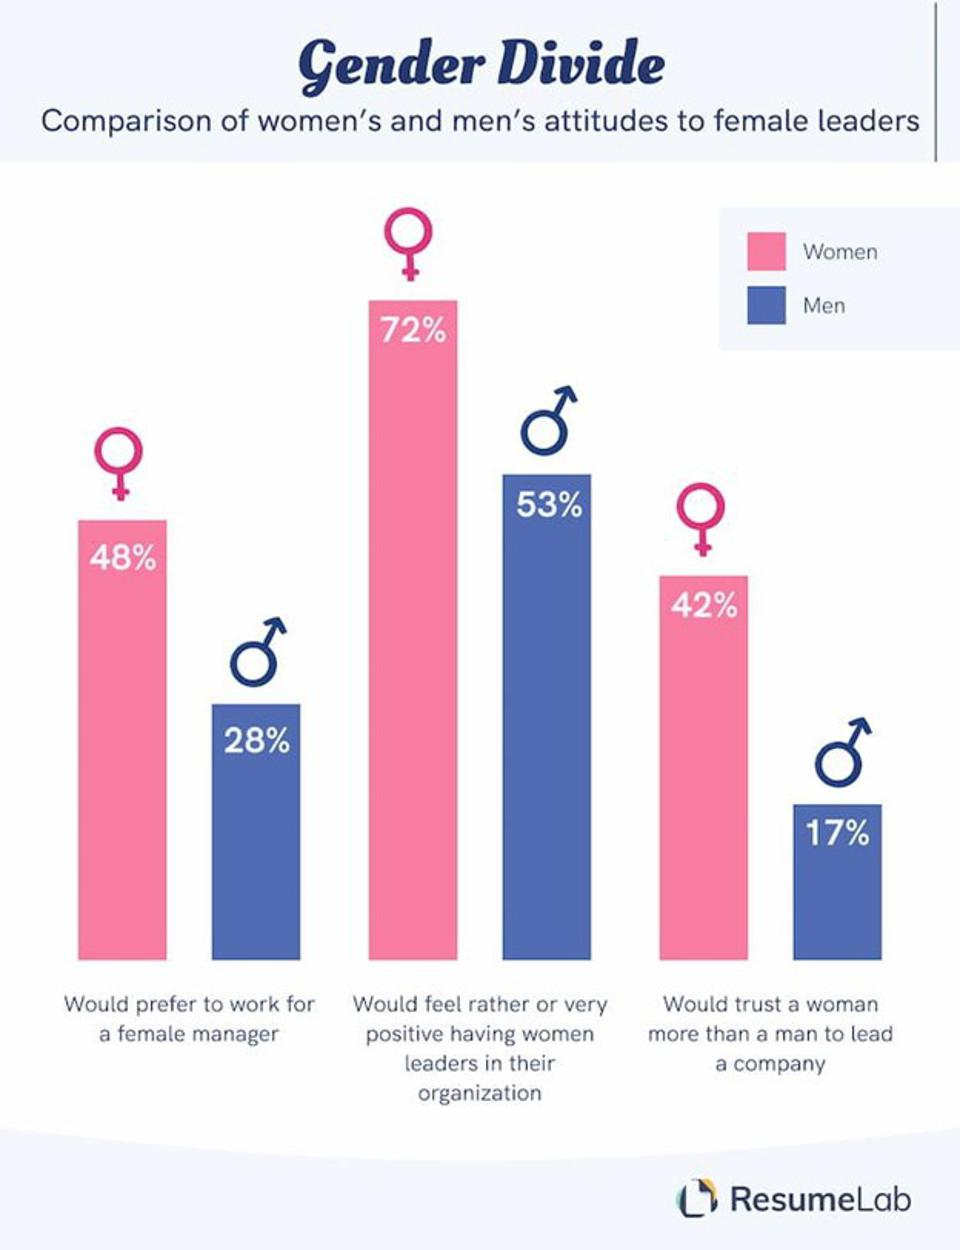 Infographic on Gender Divide, a comparison of women's and men's attitudes to female leaders.